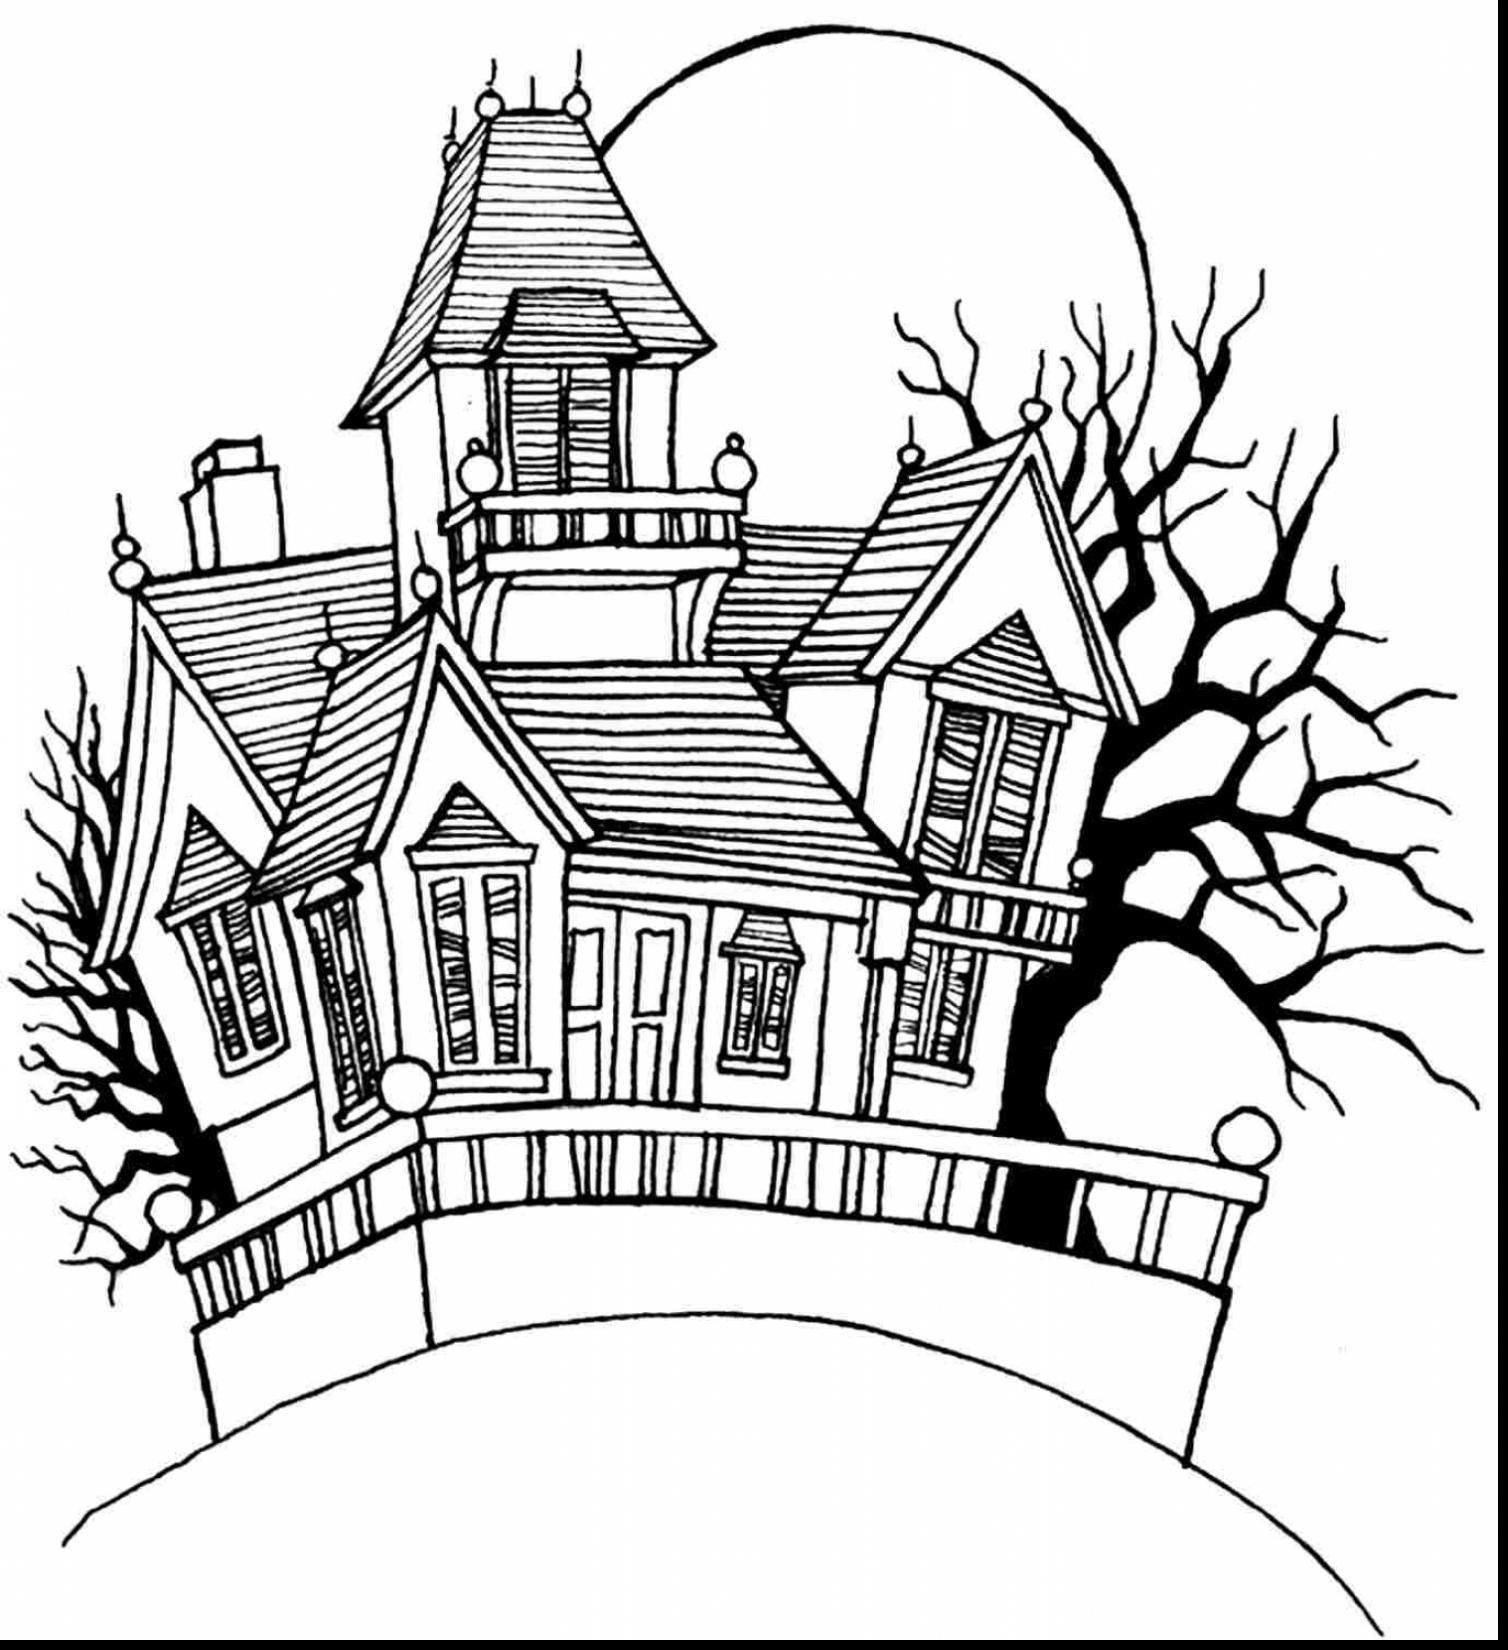 White House coloring page | Free Printable Coloring Pages | 1650x1508